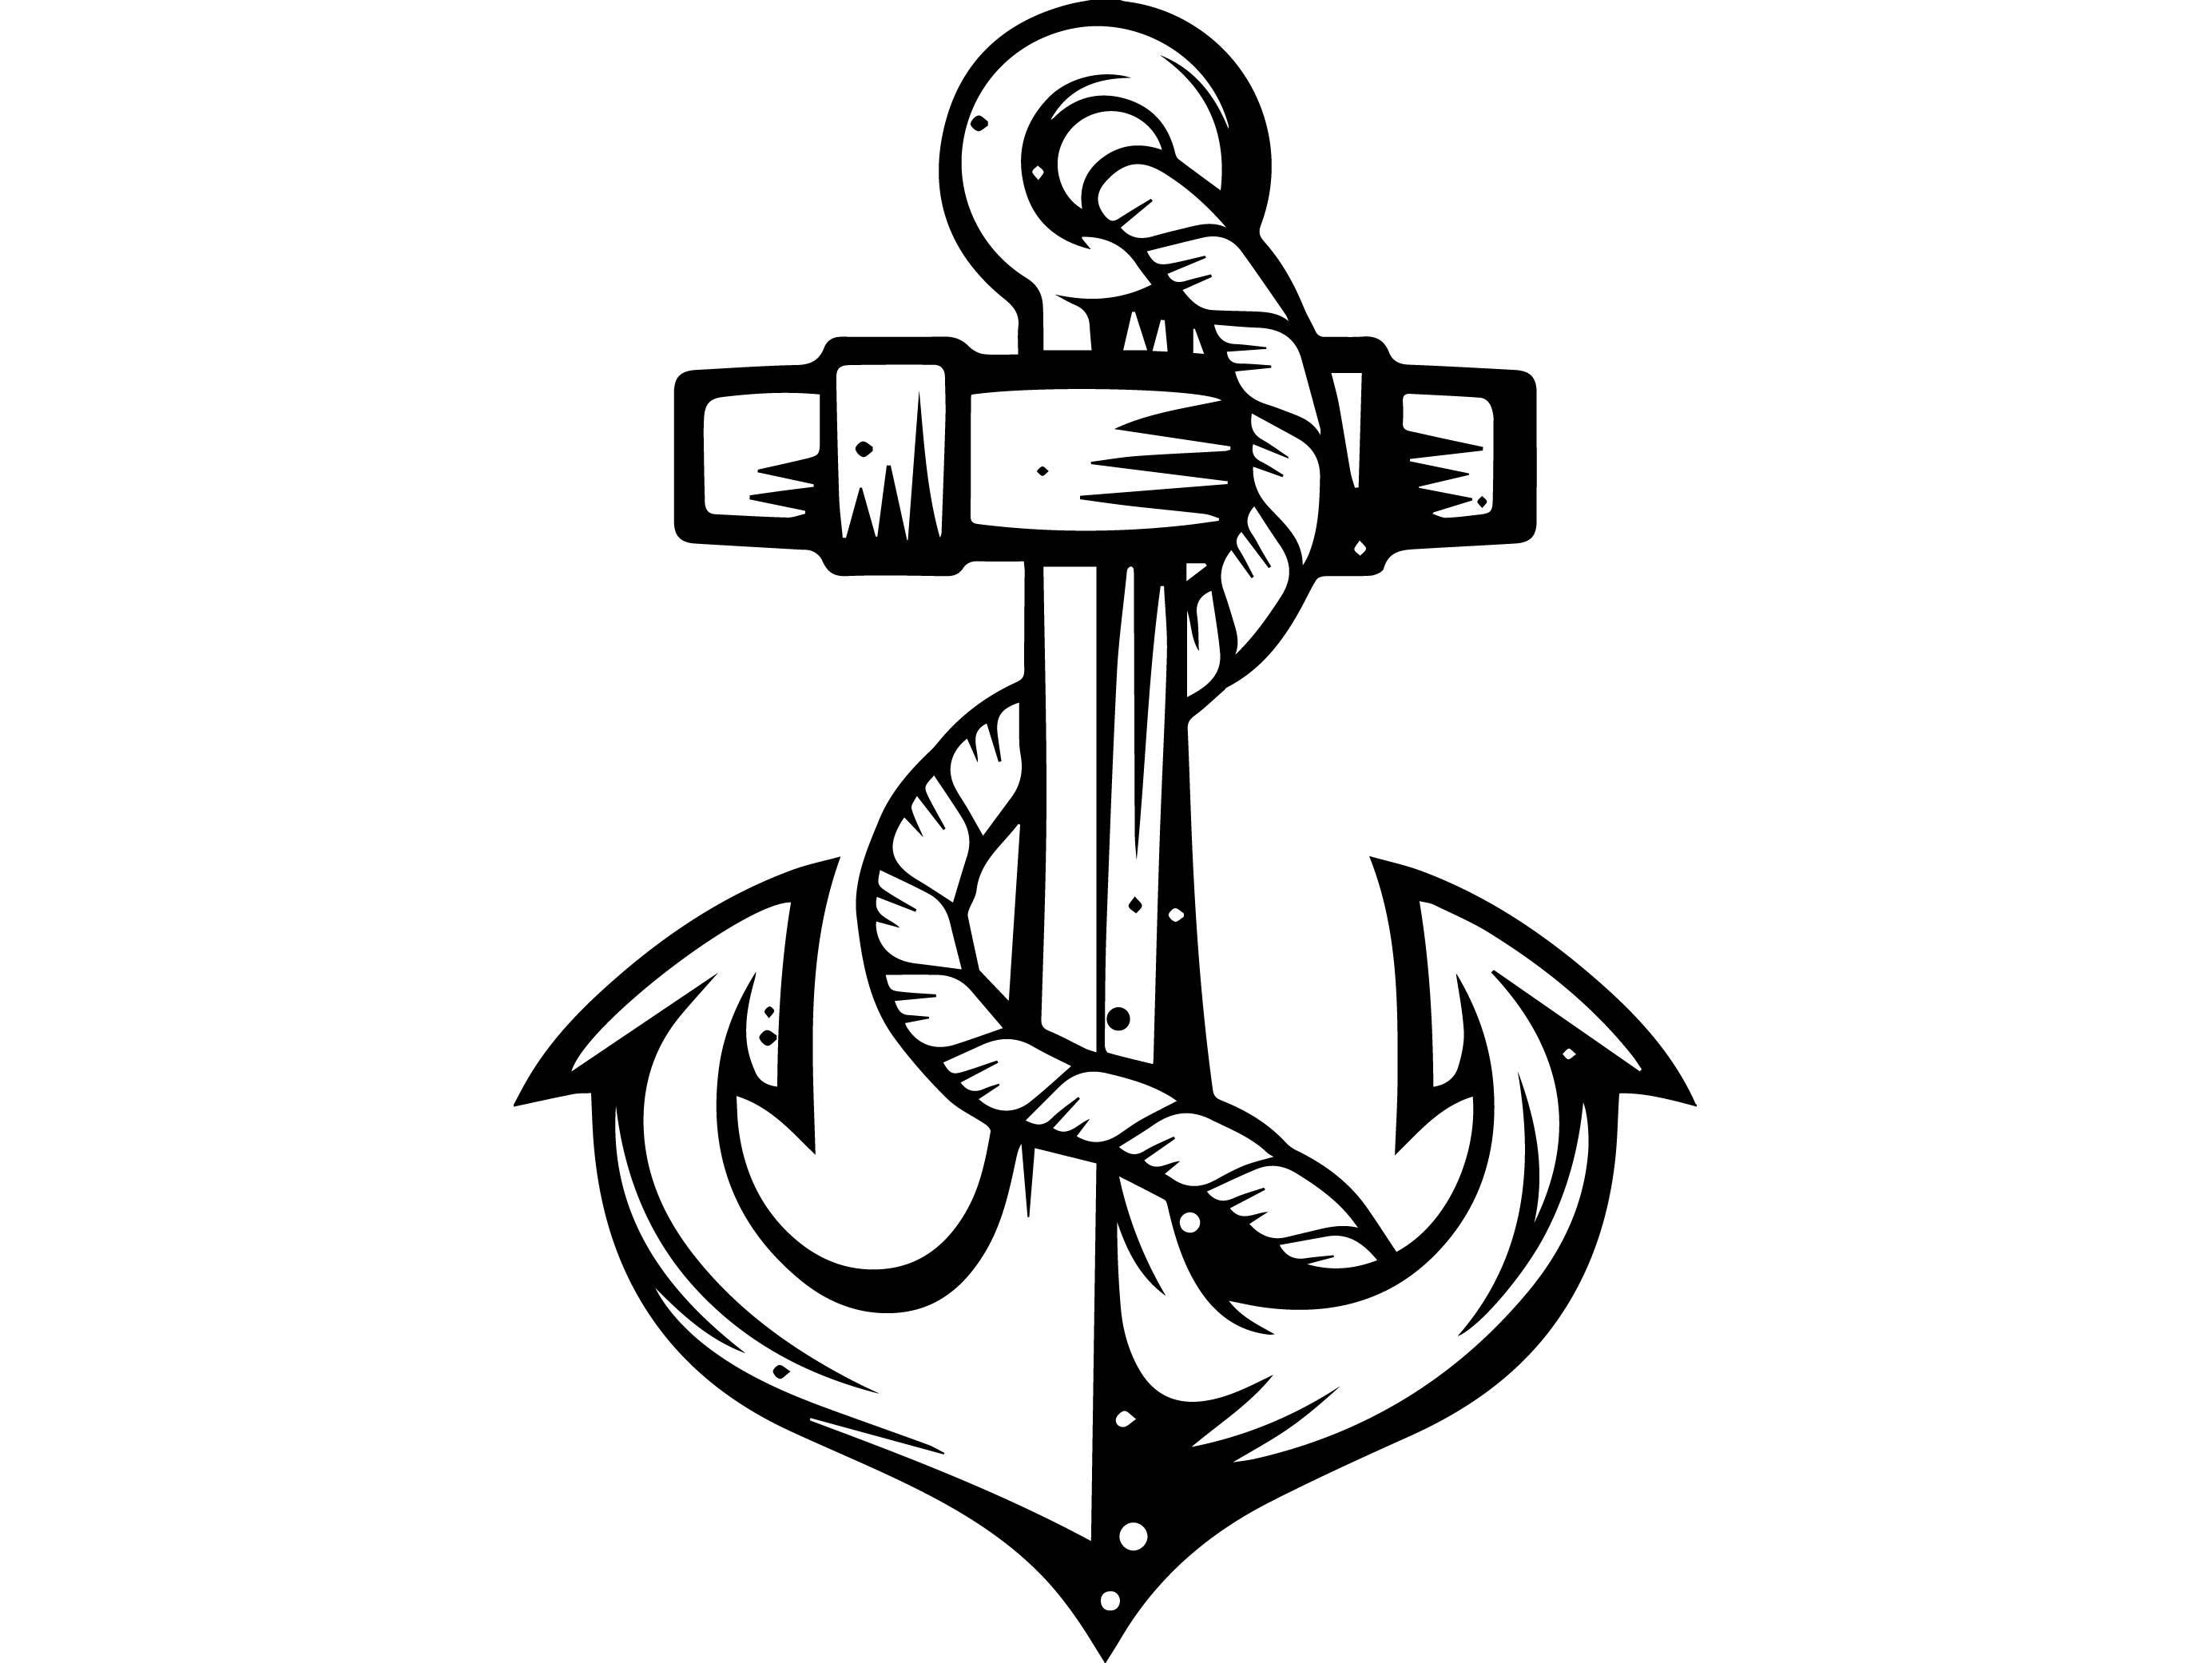 sketch of an anchor best alaska cruise illustrations royalty free vector of an sketch anchor